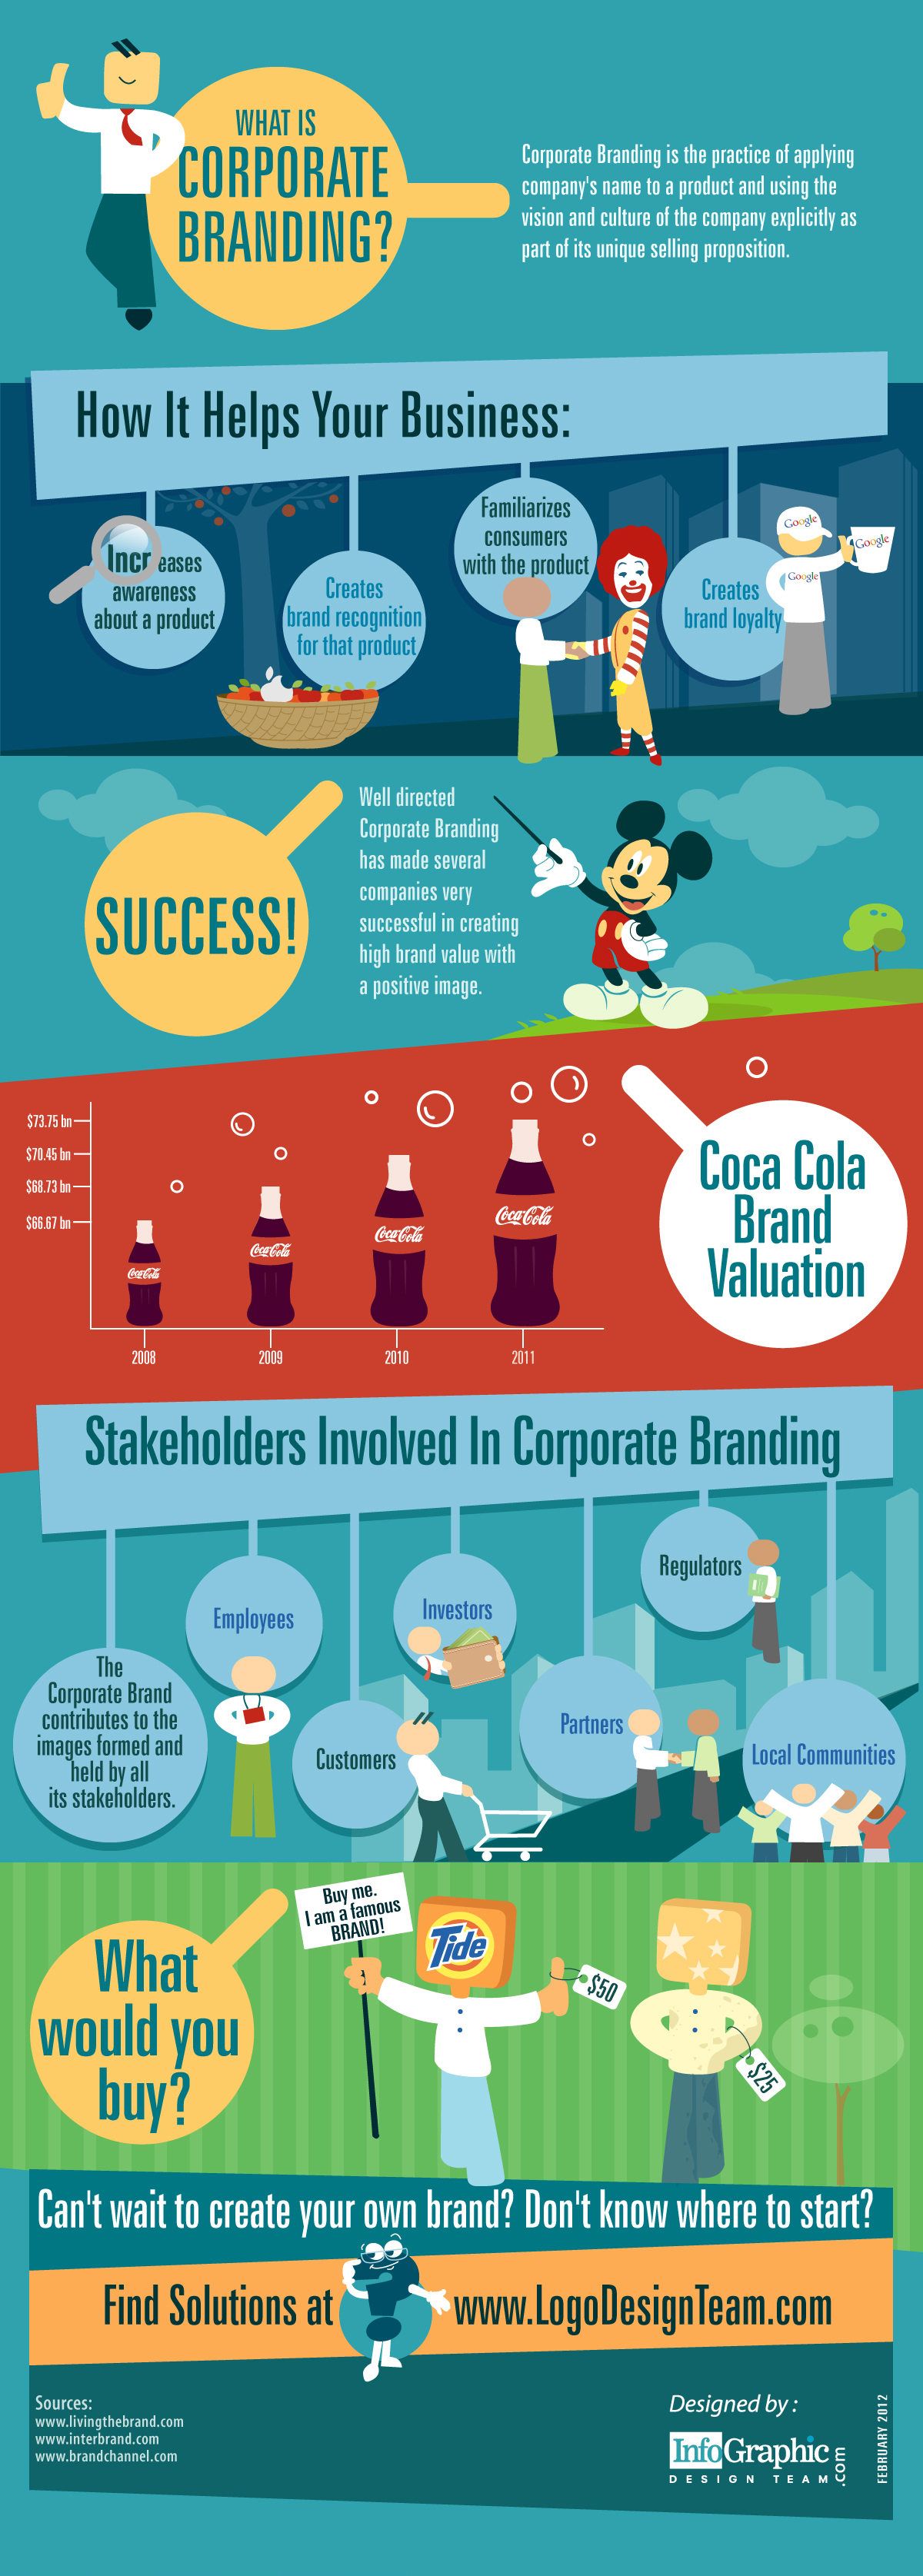 What Is Corporate Branding?